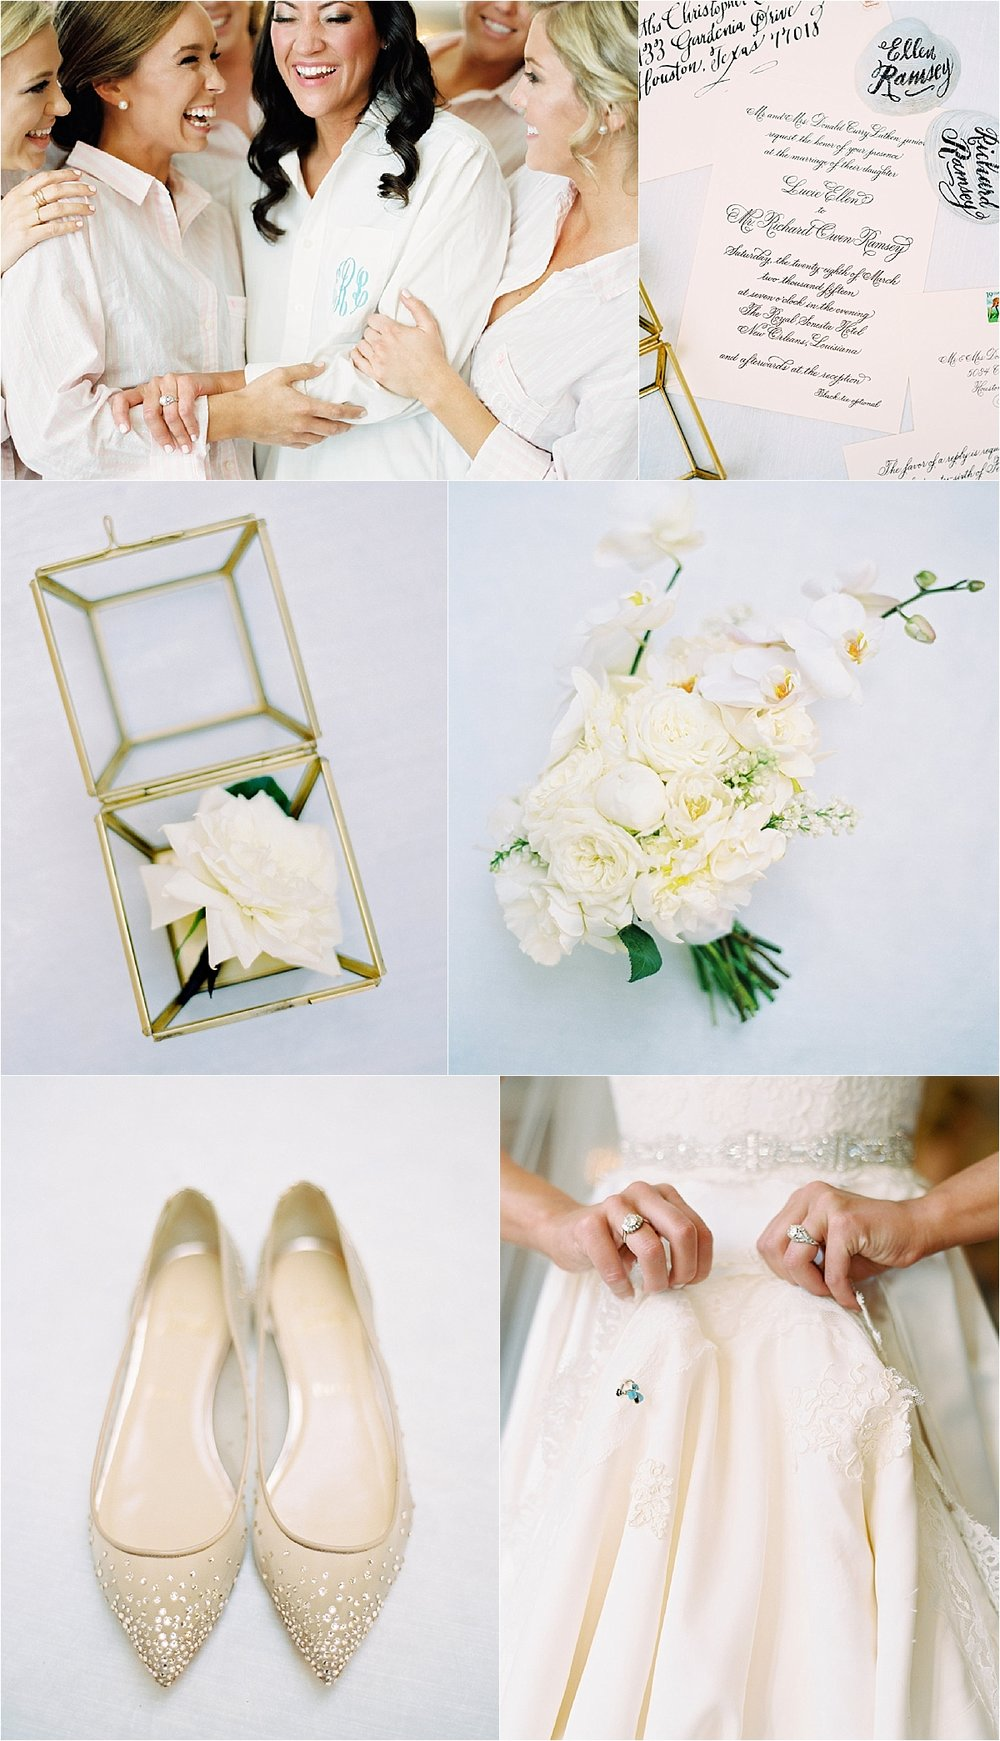 Wedding Planning | New Orleans Wedding | French Quarter Wedding | Sapphire Events | Ryan Ray Photography | White and Green Wedding | Formal Black Tie Wedding | Monique Lhuillier Dress | Christian Louboutin Flats | Gardenia and Orchid flowers